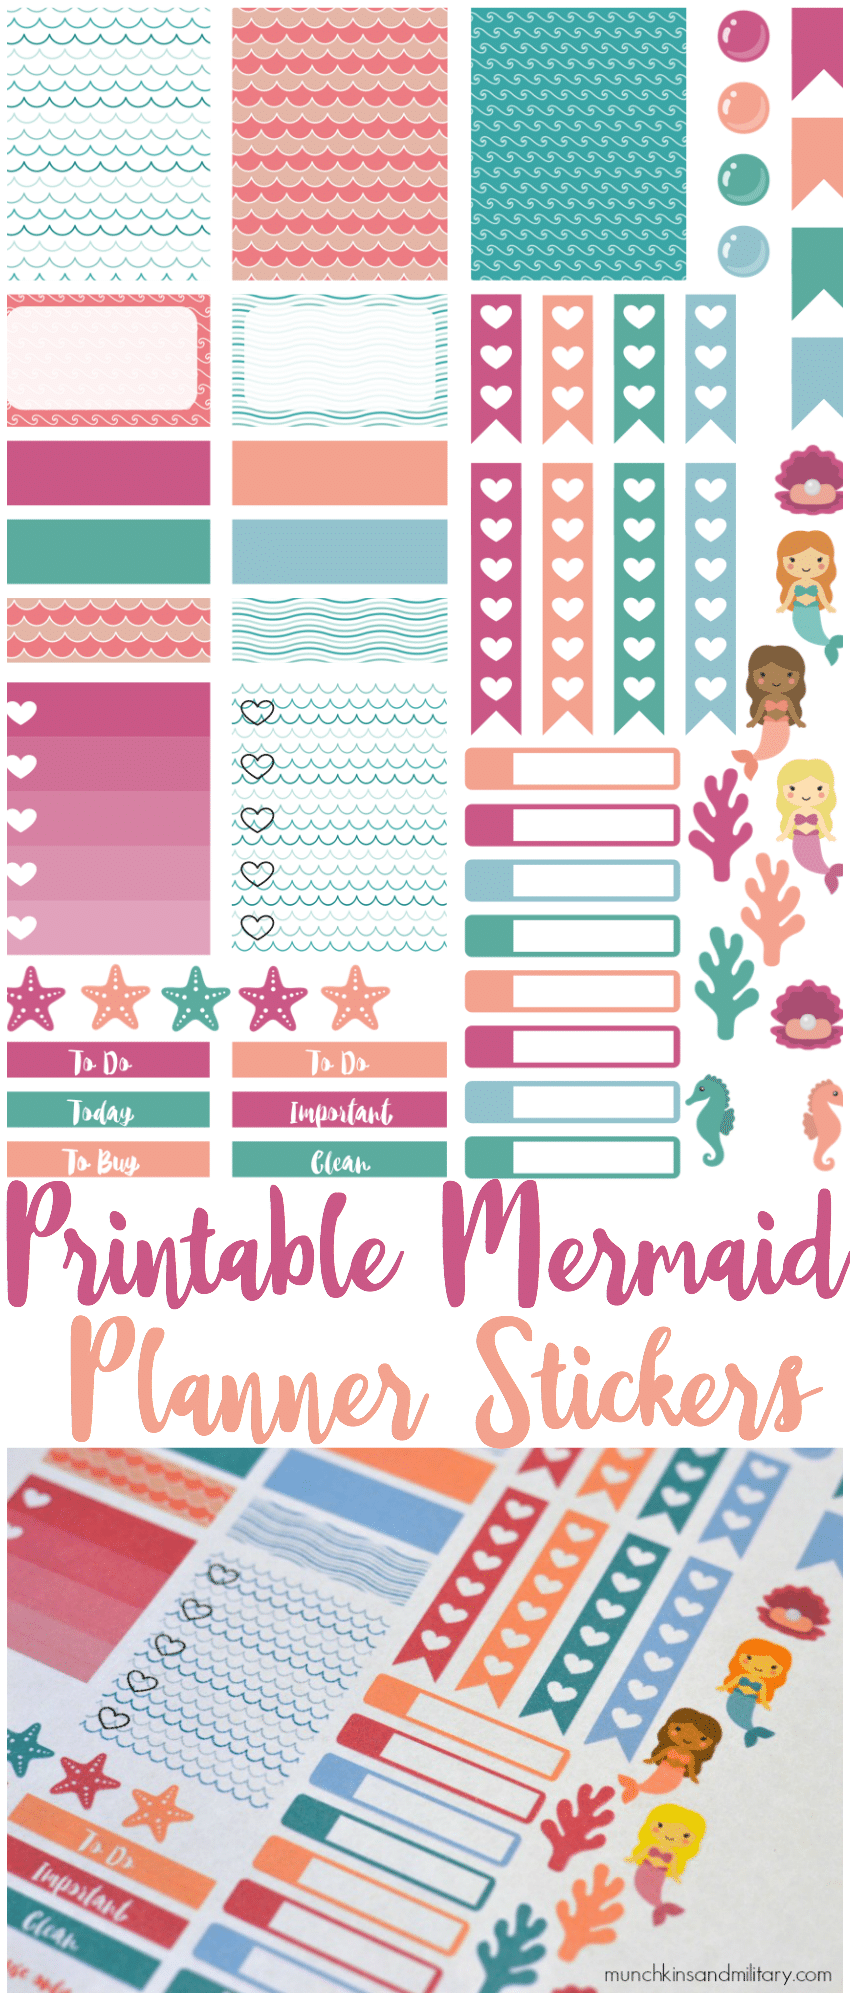 Free mermaid planner stickers for Erin Condren Life Planner - http://wp.me/p5ol3R-13o - #planneraddict